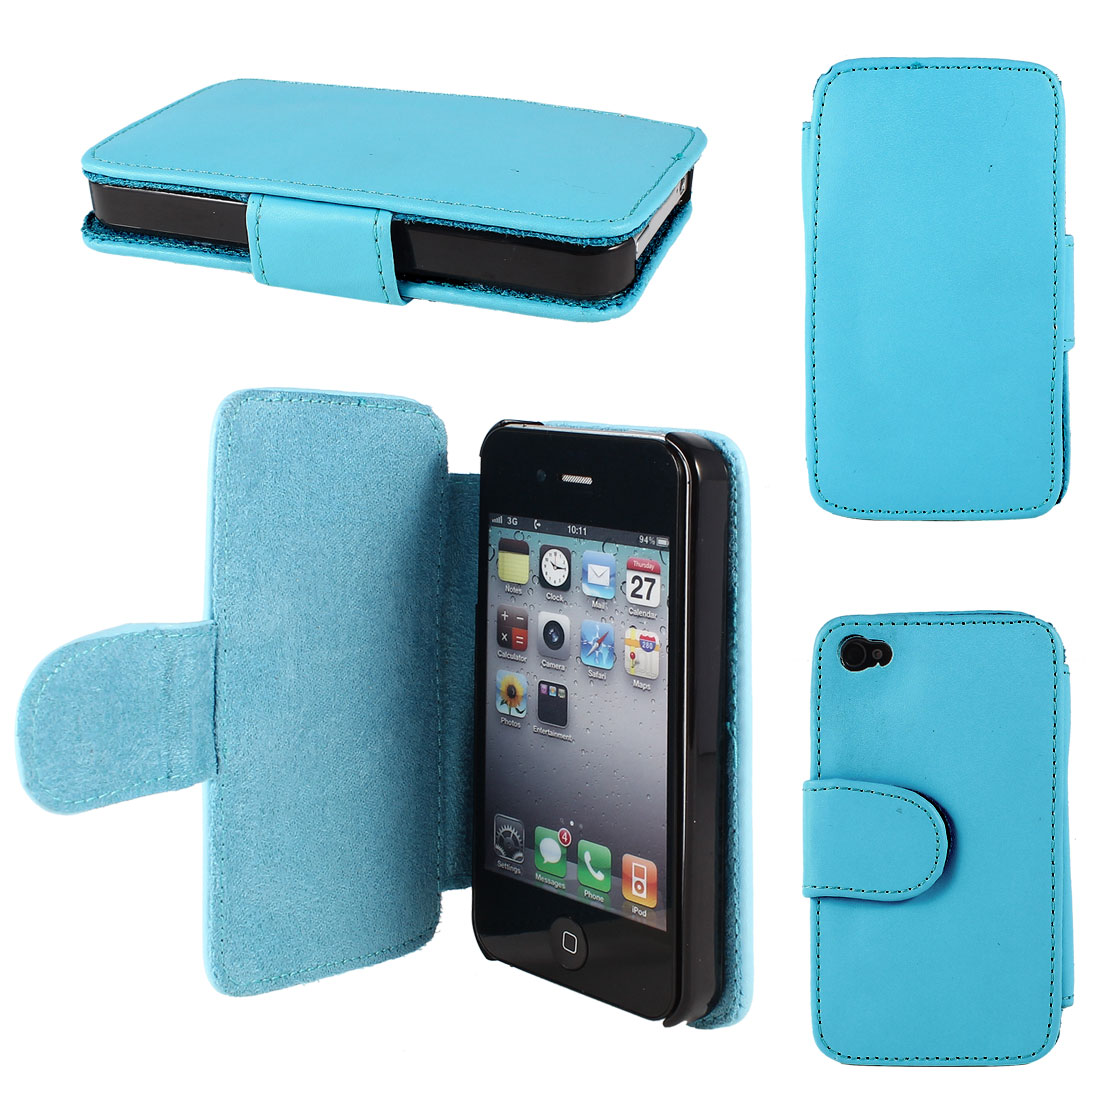 Teal Blue Faux Leather Magnetic Flip Case Cover Pouch for Apple iPhone 4 4G